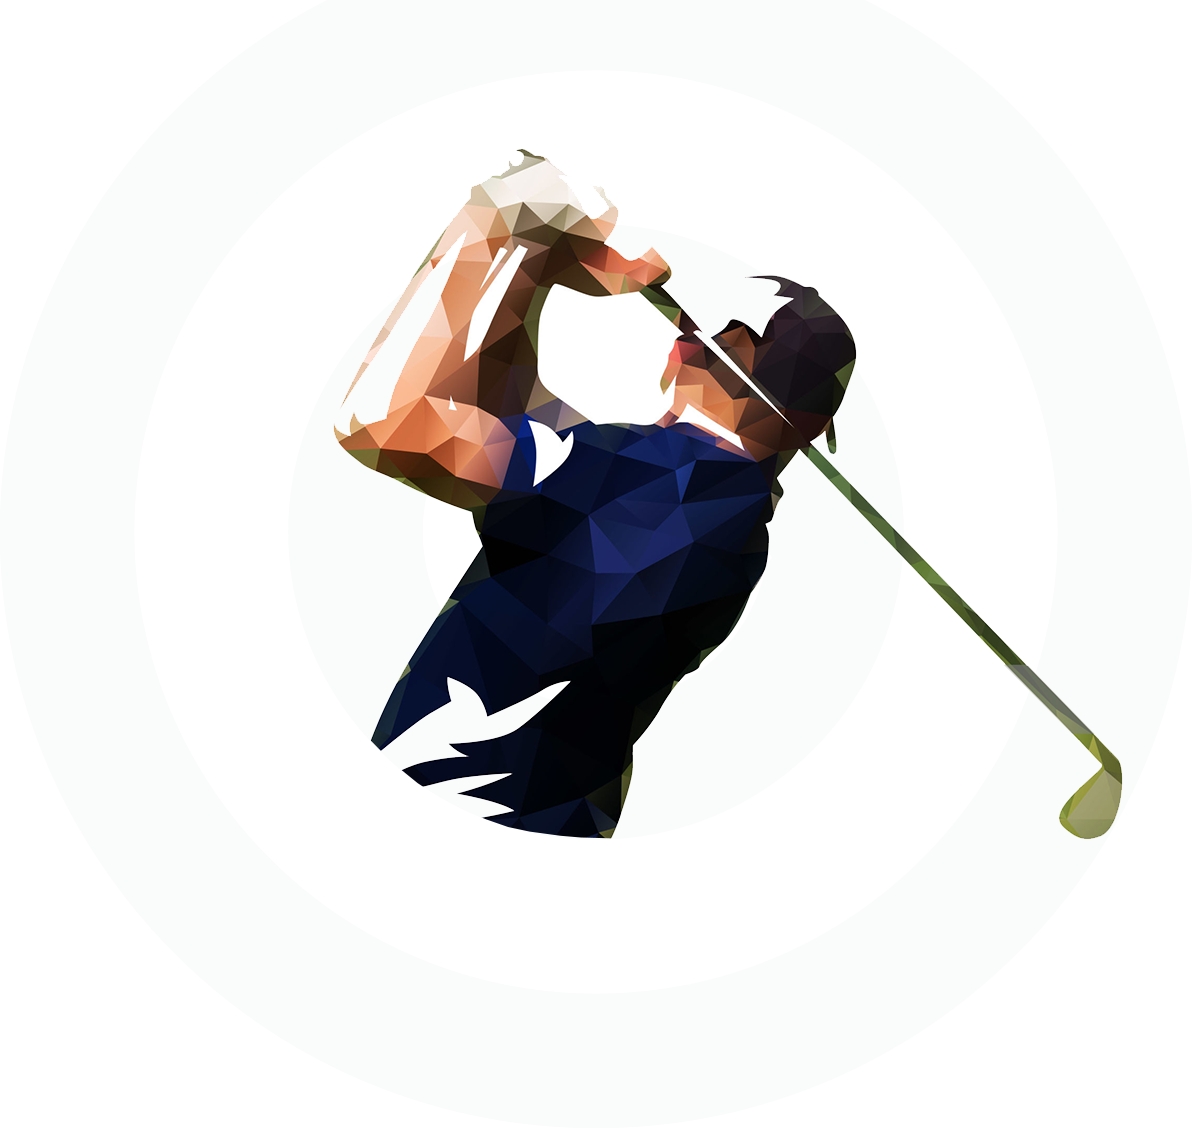 illustration of a golfer